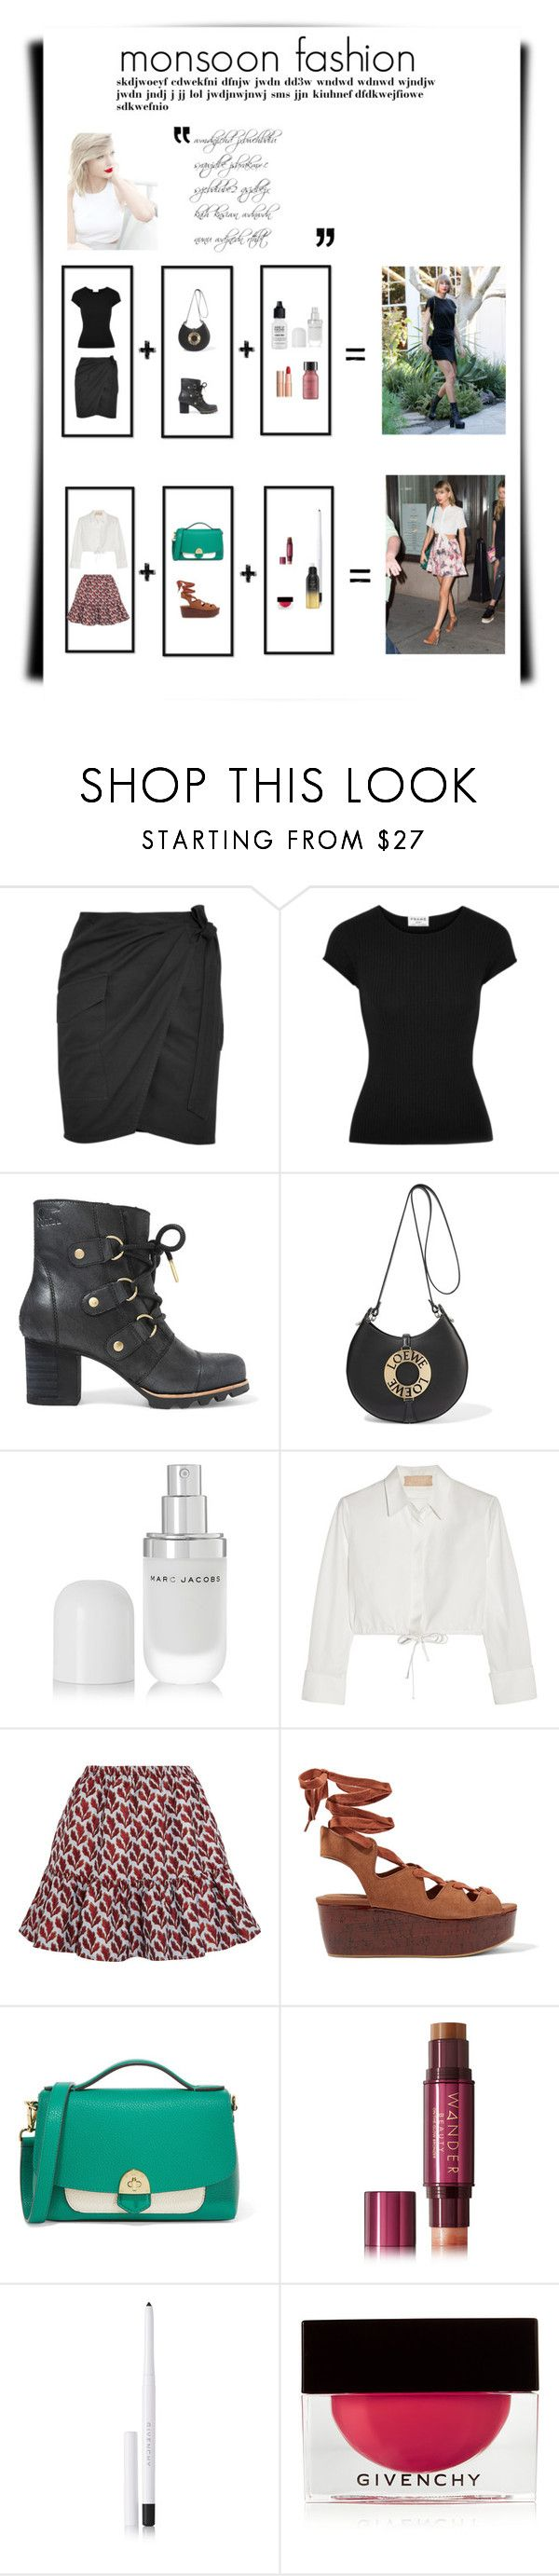 """""""monsoon layout"""" by teresaboban on Polyvore featuring Étoile Isabel Marant, Frame, SOREL, Loewe, Marc Jacobs, Alaïa, Philosophy di Lorenzo Serafini, See by Chloé, Mallet & Co and Wander Beauty"""